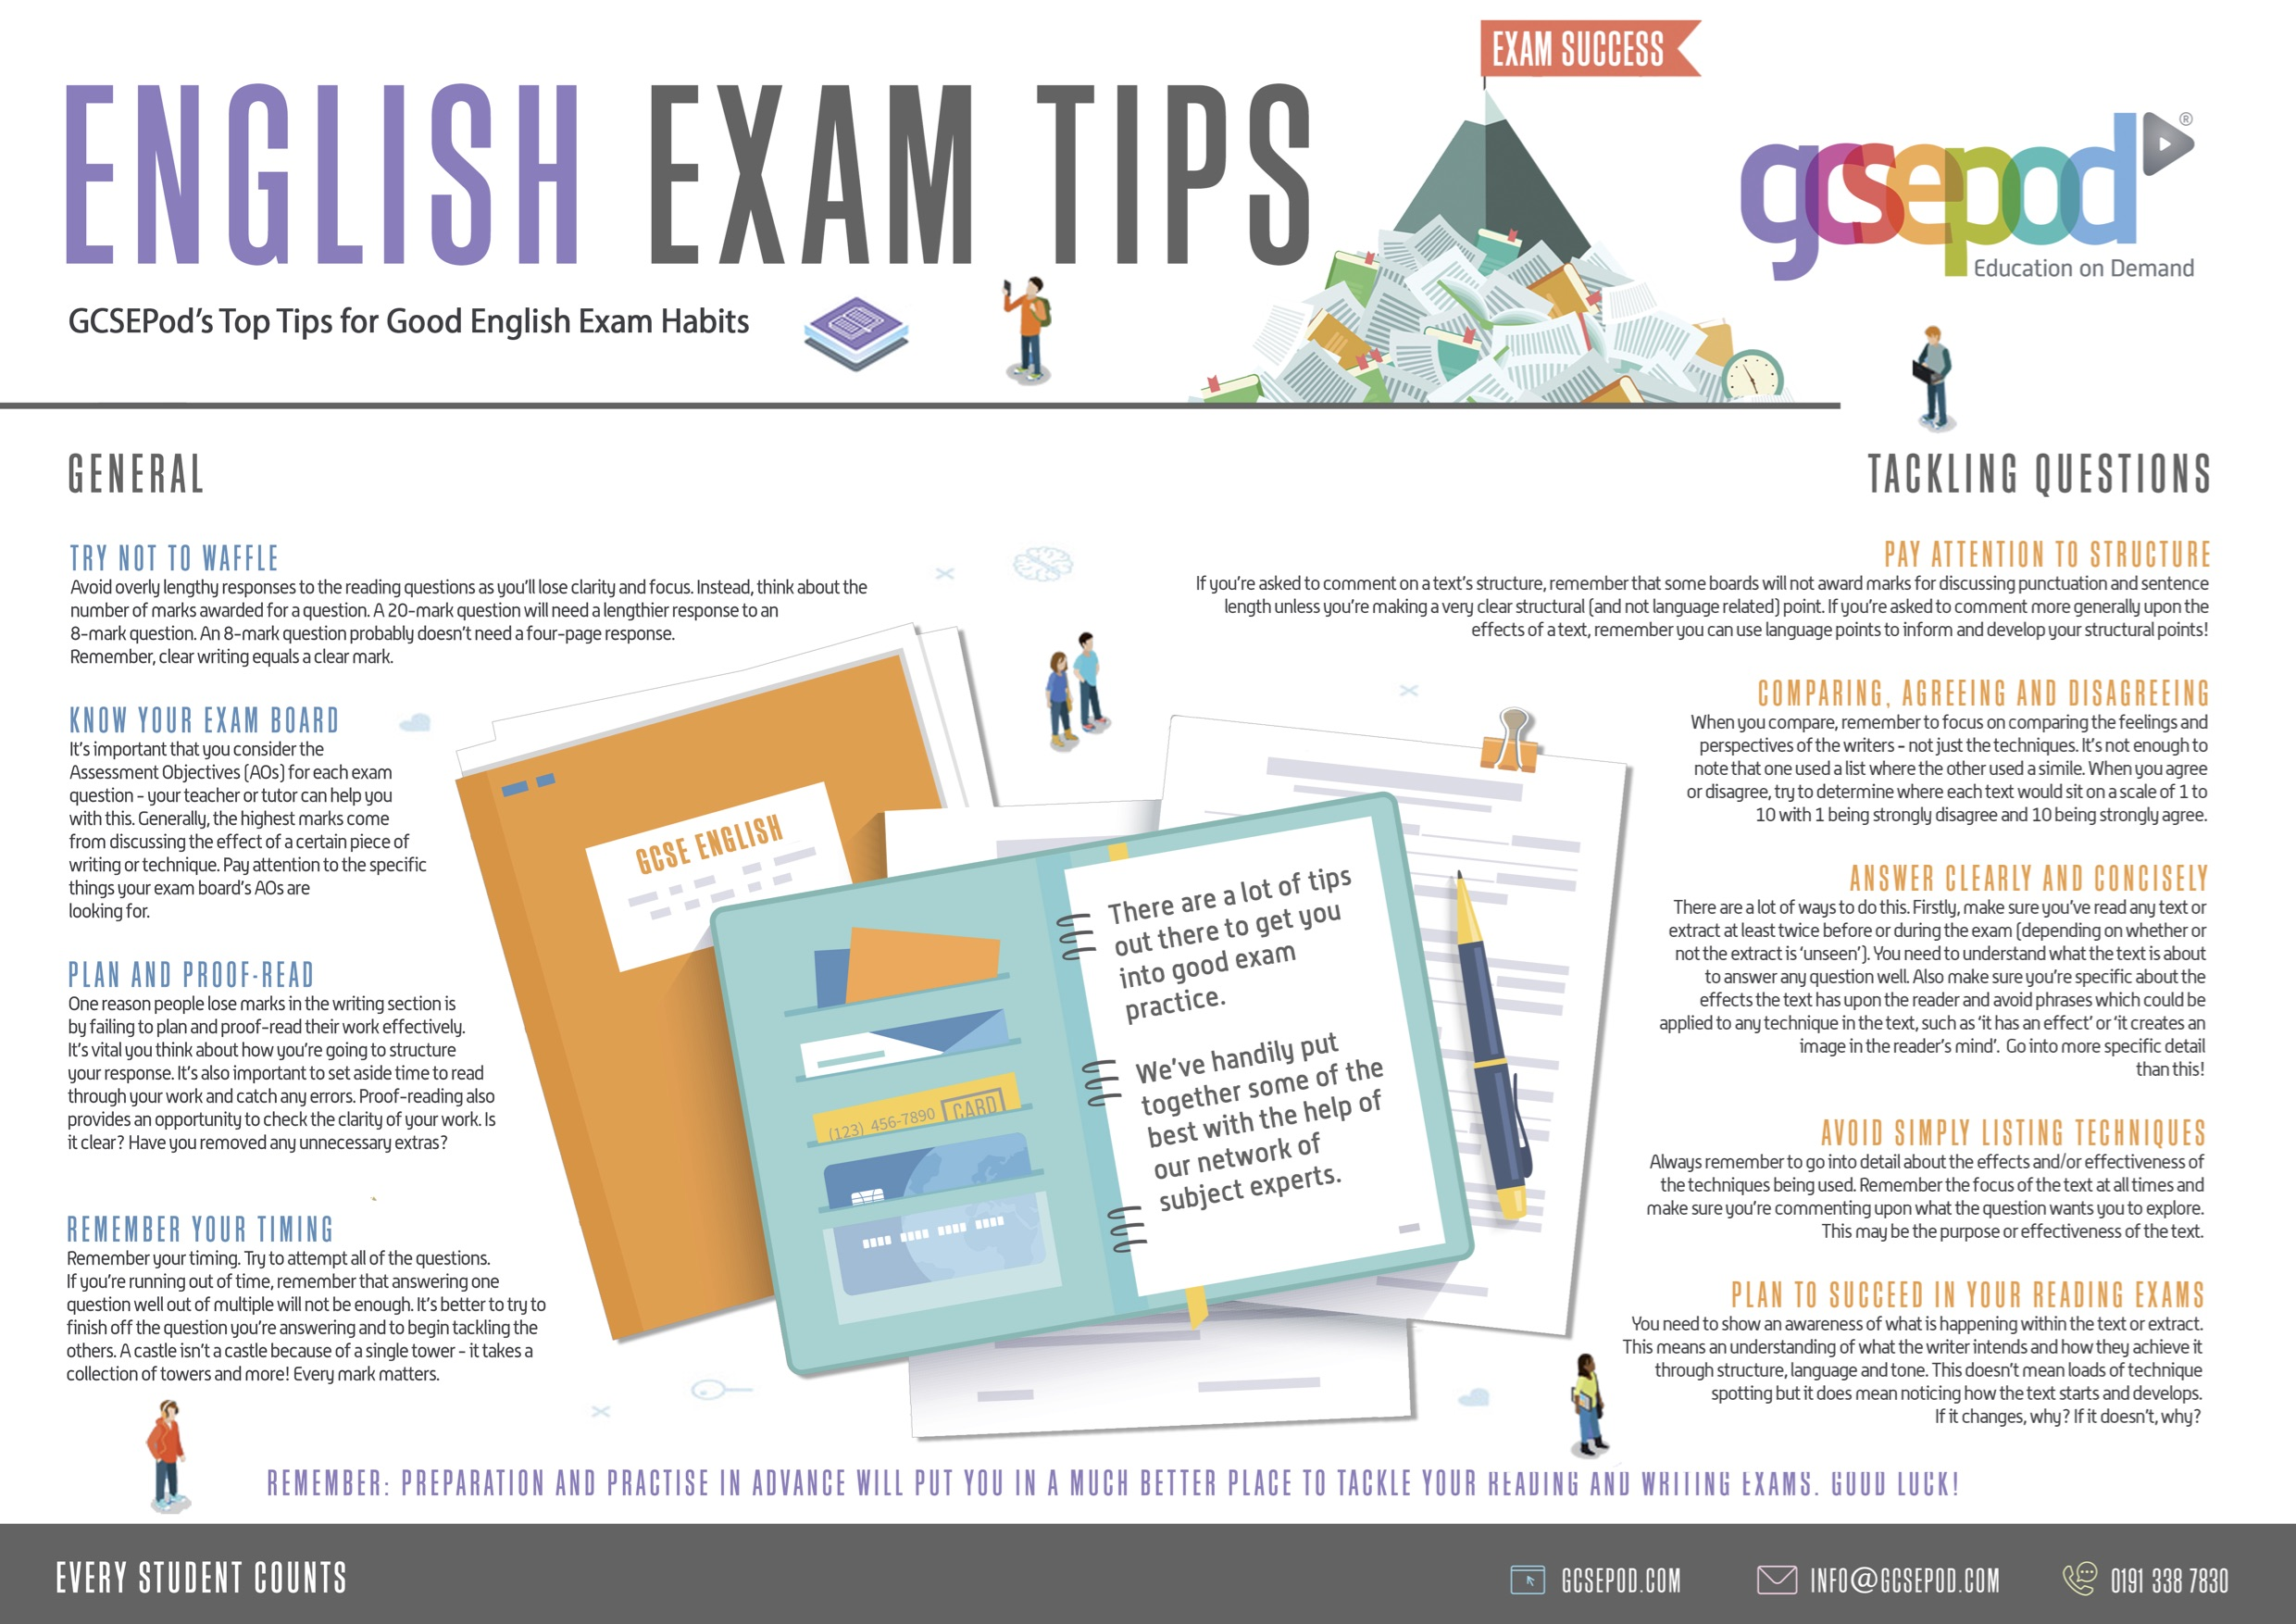 Student-Guide-GCSEPod's-Top-Tips-for-Good-English-Exam-Habits.jpg